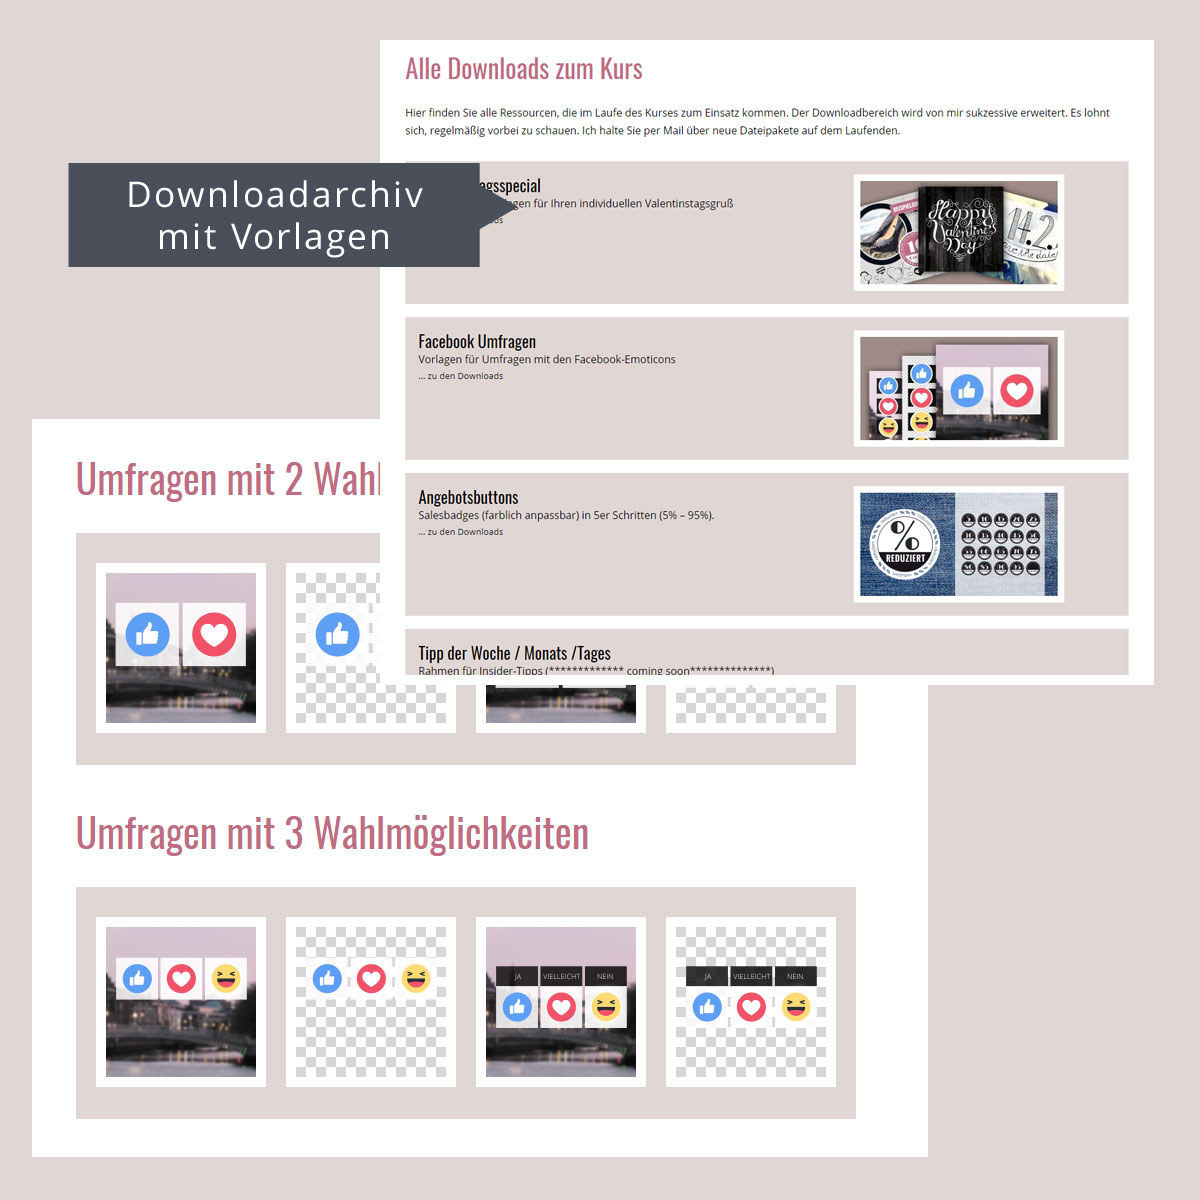 SocialMedia Fundus - Fertige Facebook-Posts zum Copy & Paste